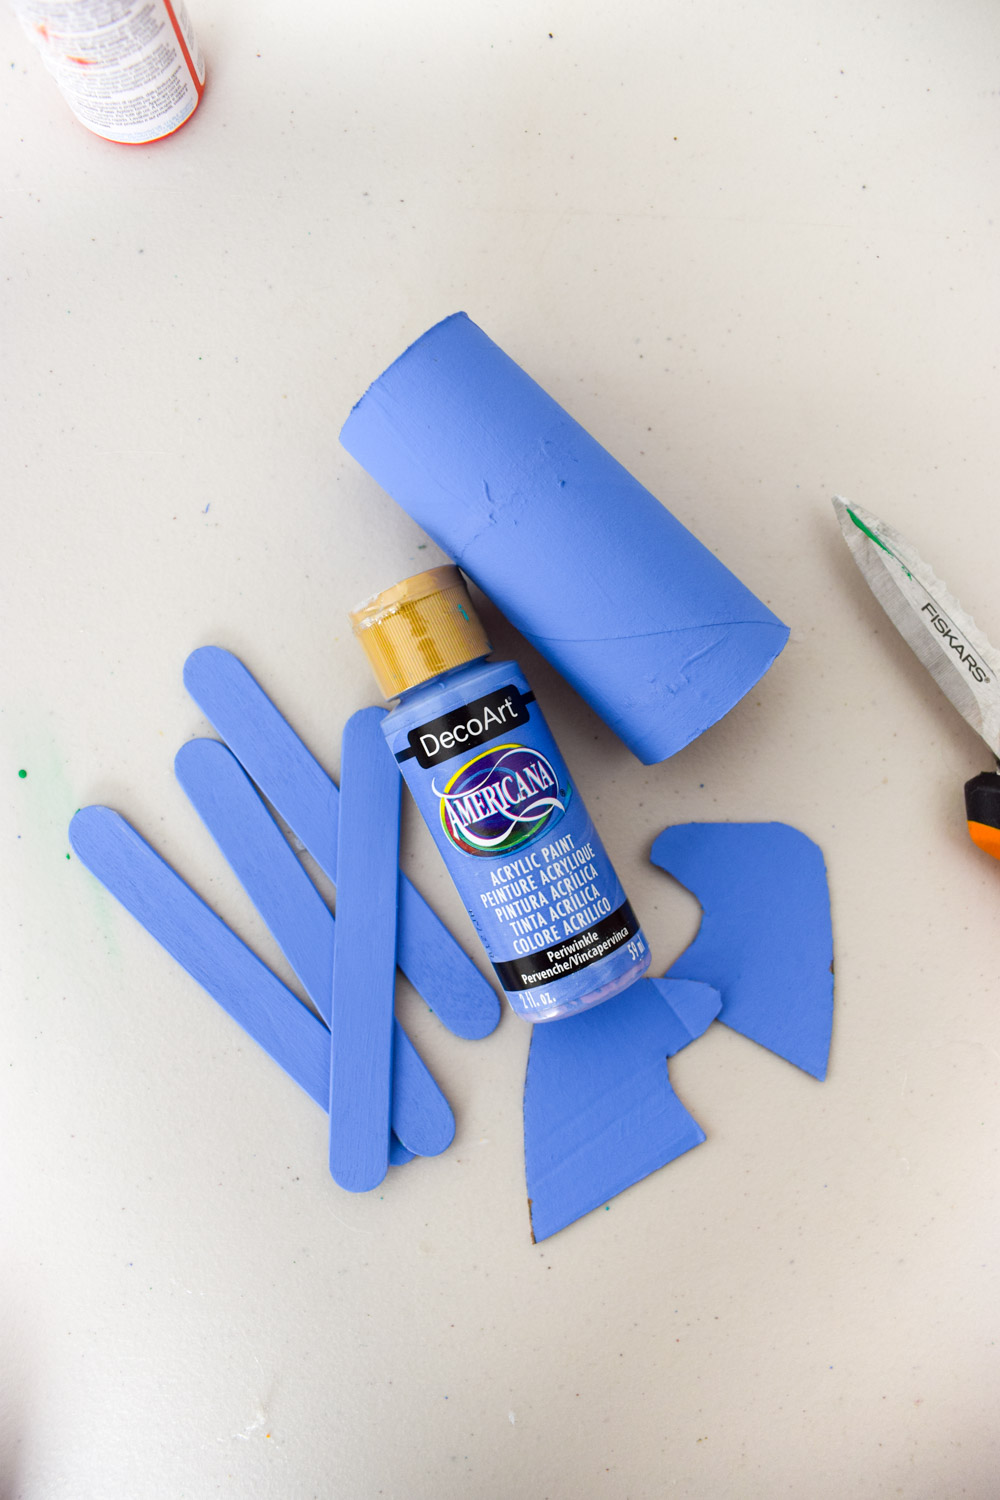 diy toilet paper roll horses are the perfect rainy day craft, and your little ones will get some mileage out of them. Come see how!